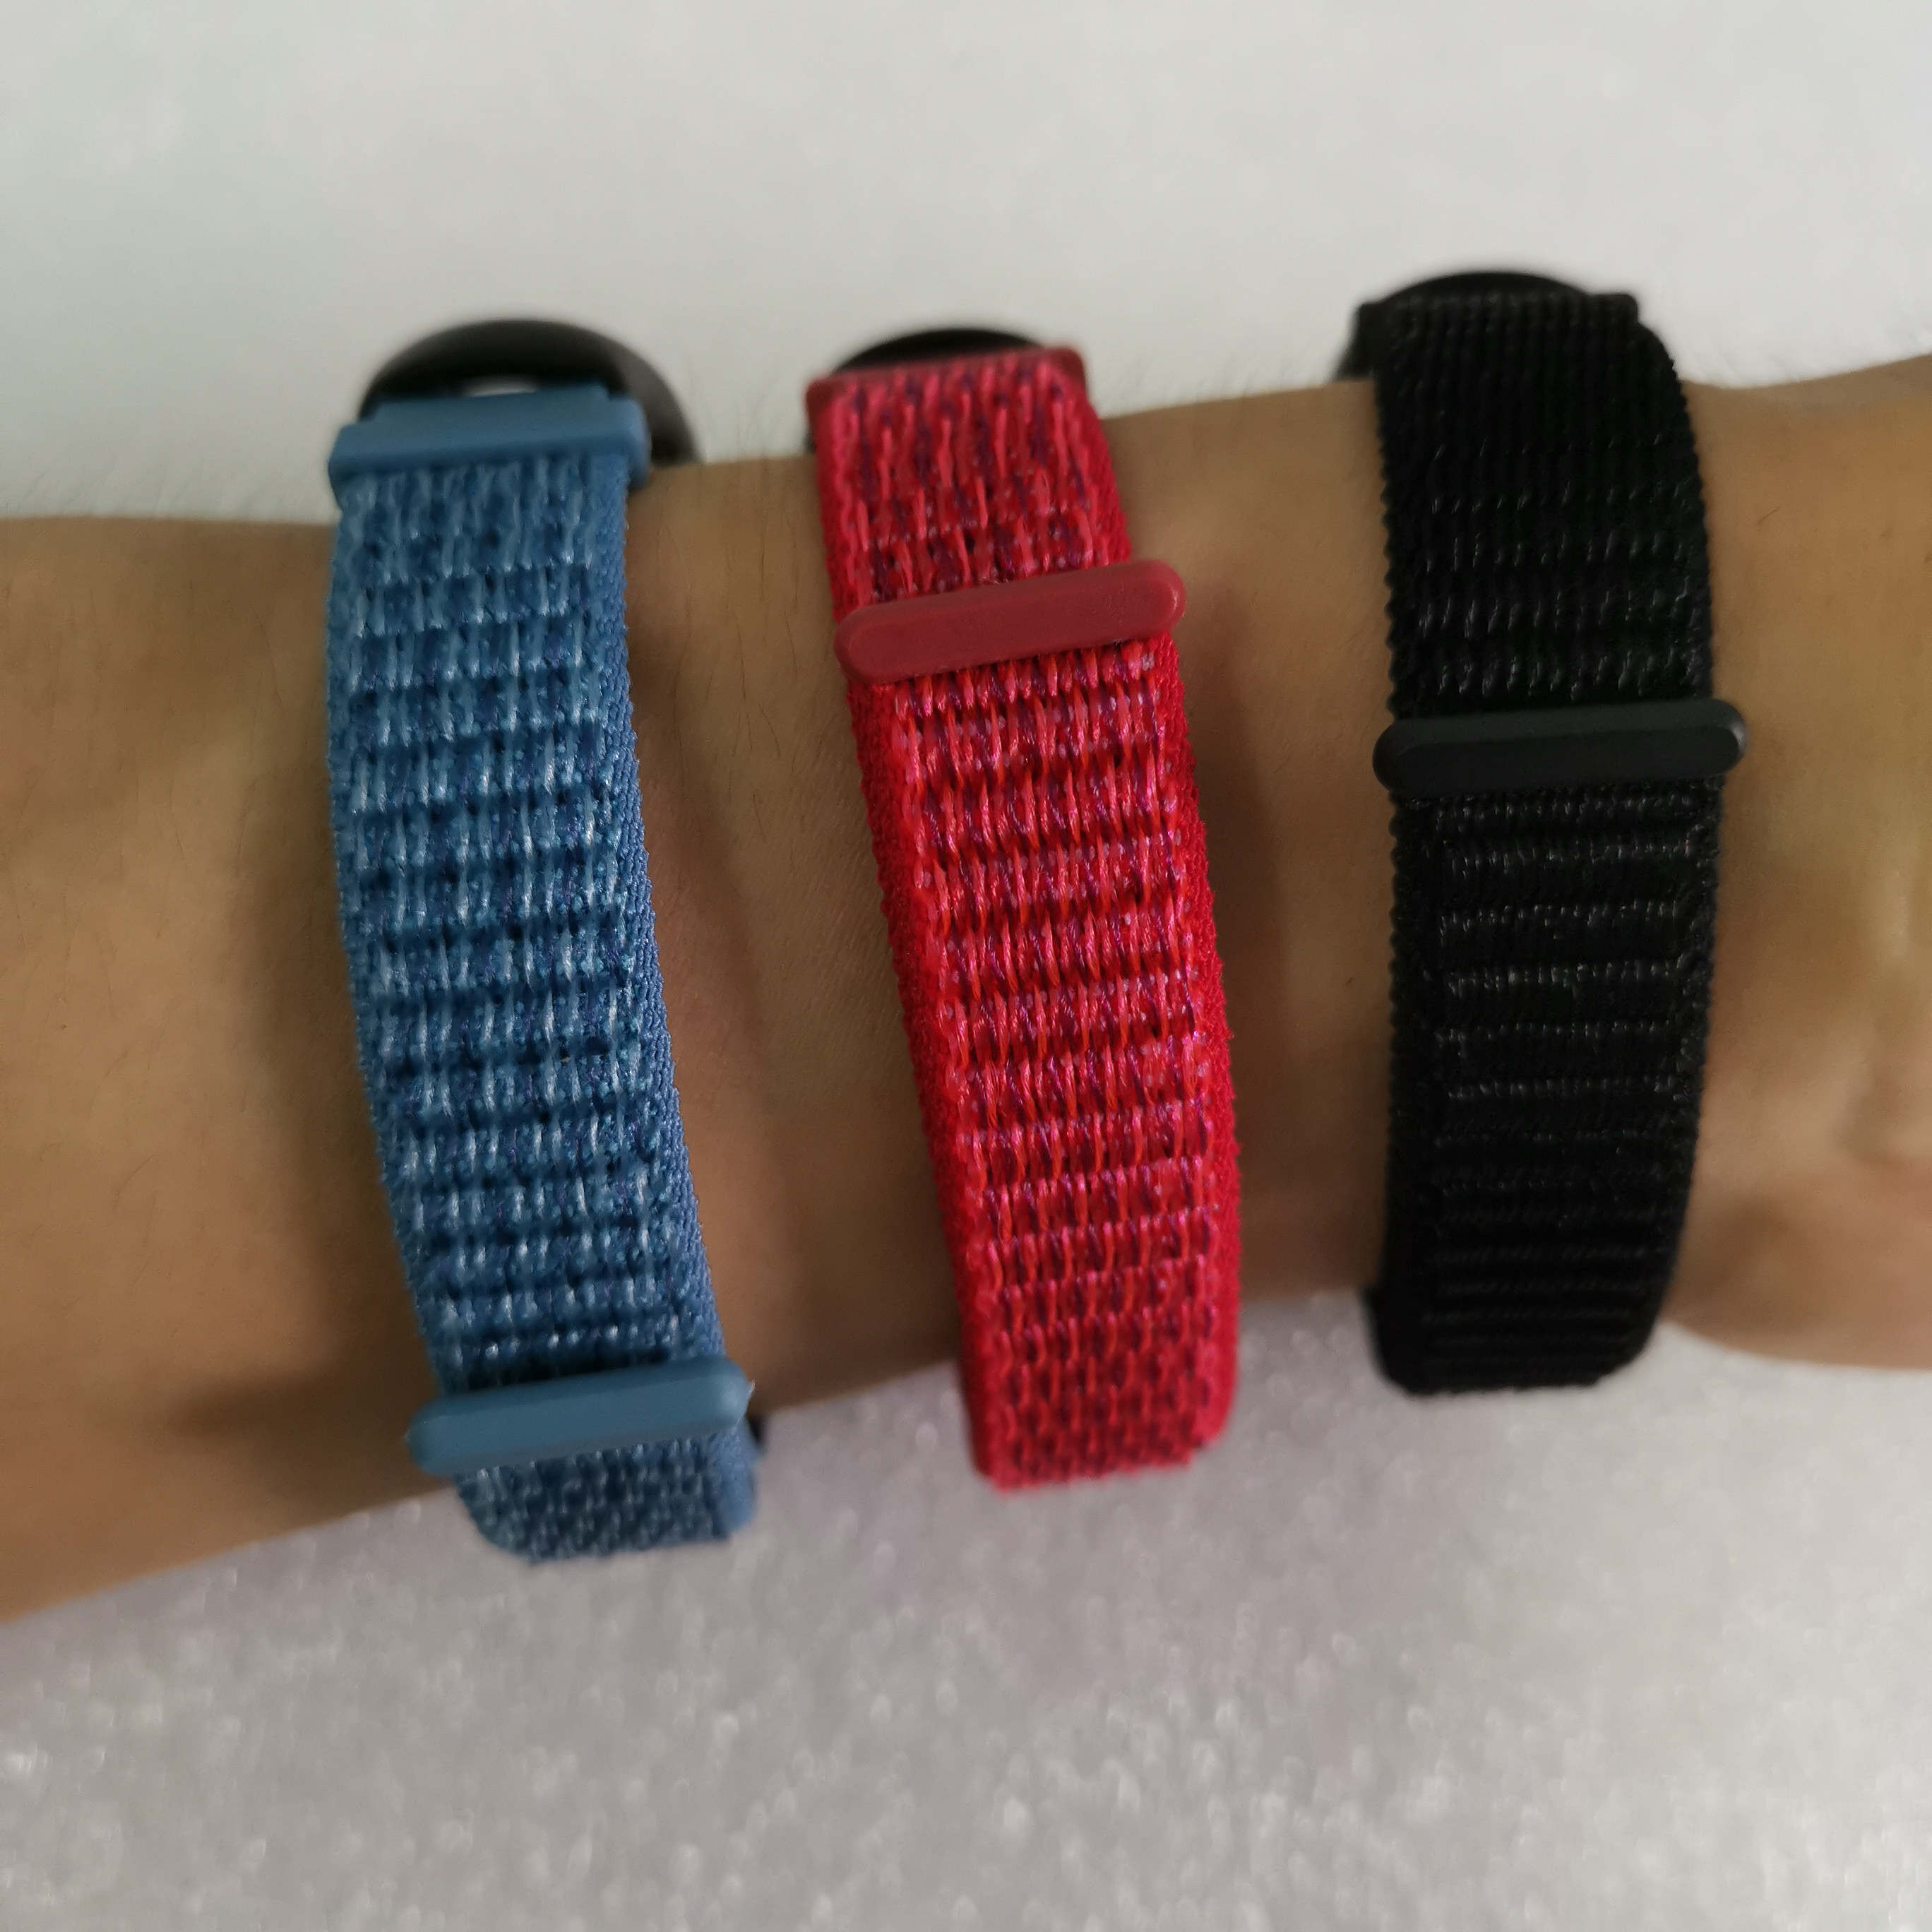 12mm Watch Strap Bracelet Nylon Watchband Wrist Belt Band Loopback Wristband 12mm Width Quick Release WatchStrap Watchbands